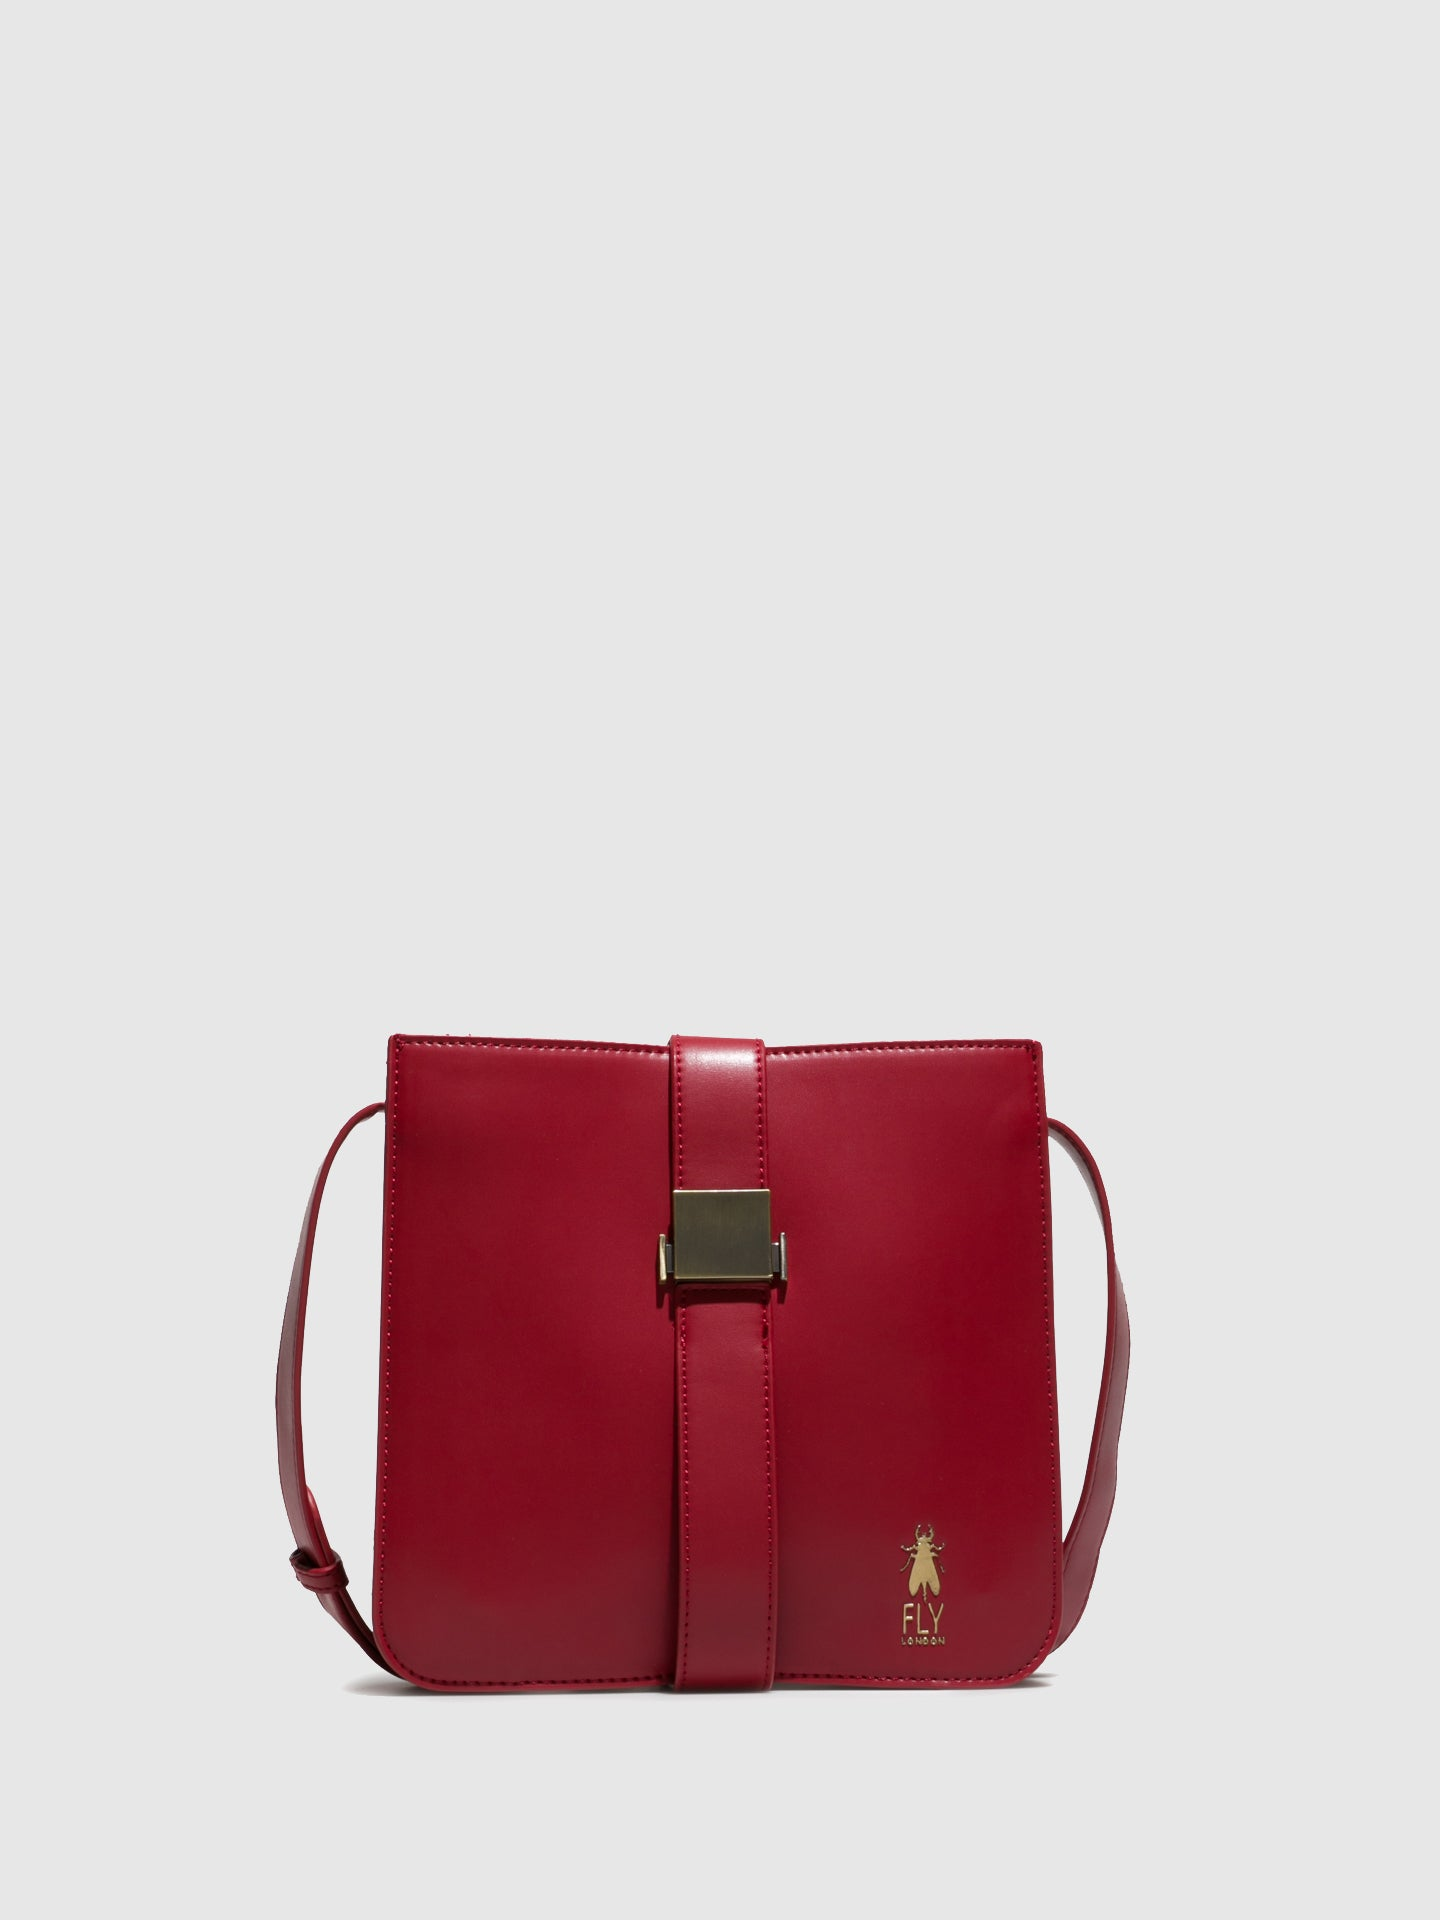 Fly London Shoulder Bags ANJU709FLY COLETTE DK RED